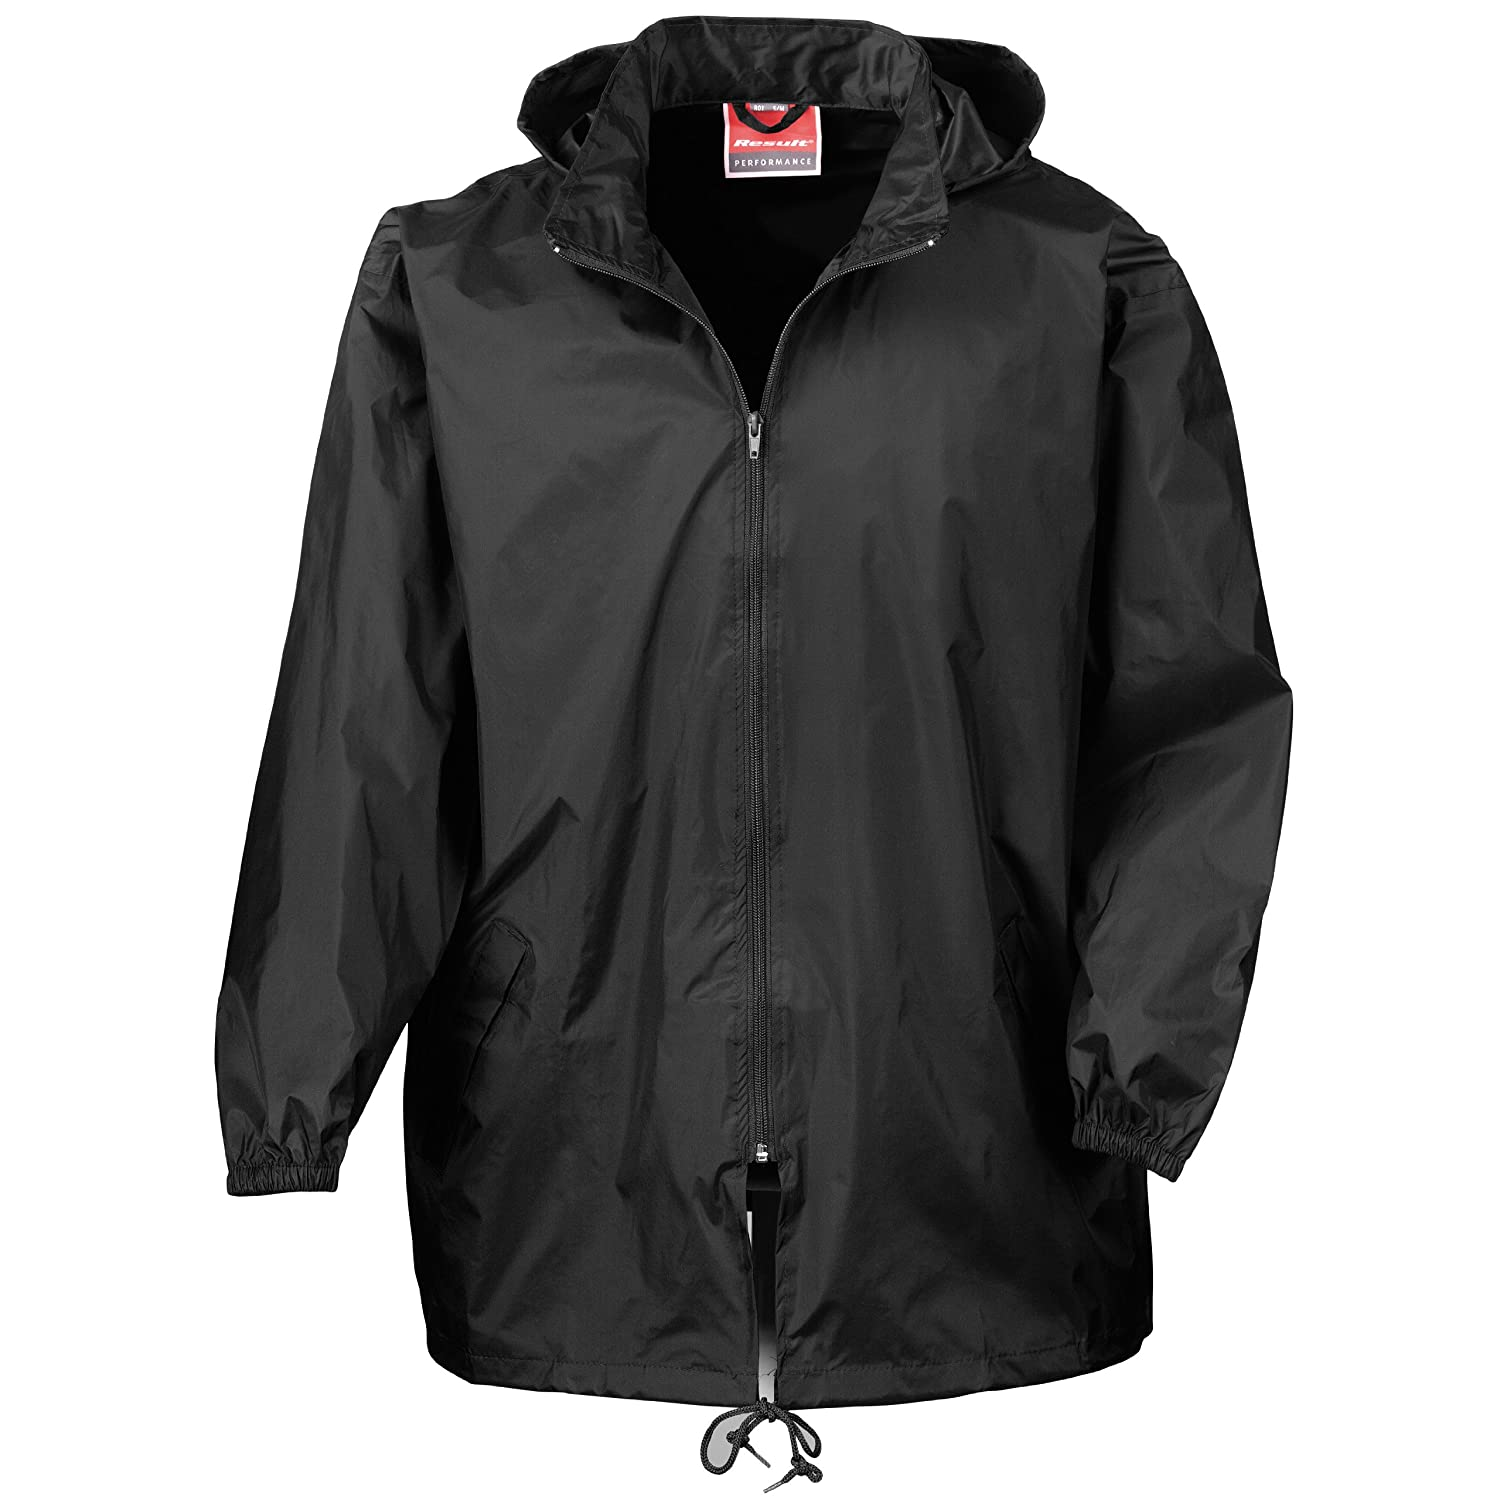 Result Mens Lightweight Waterproof Windproof Rain Jacket at Amazon